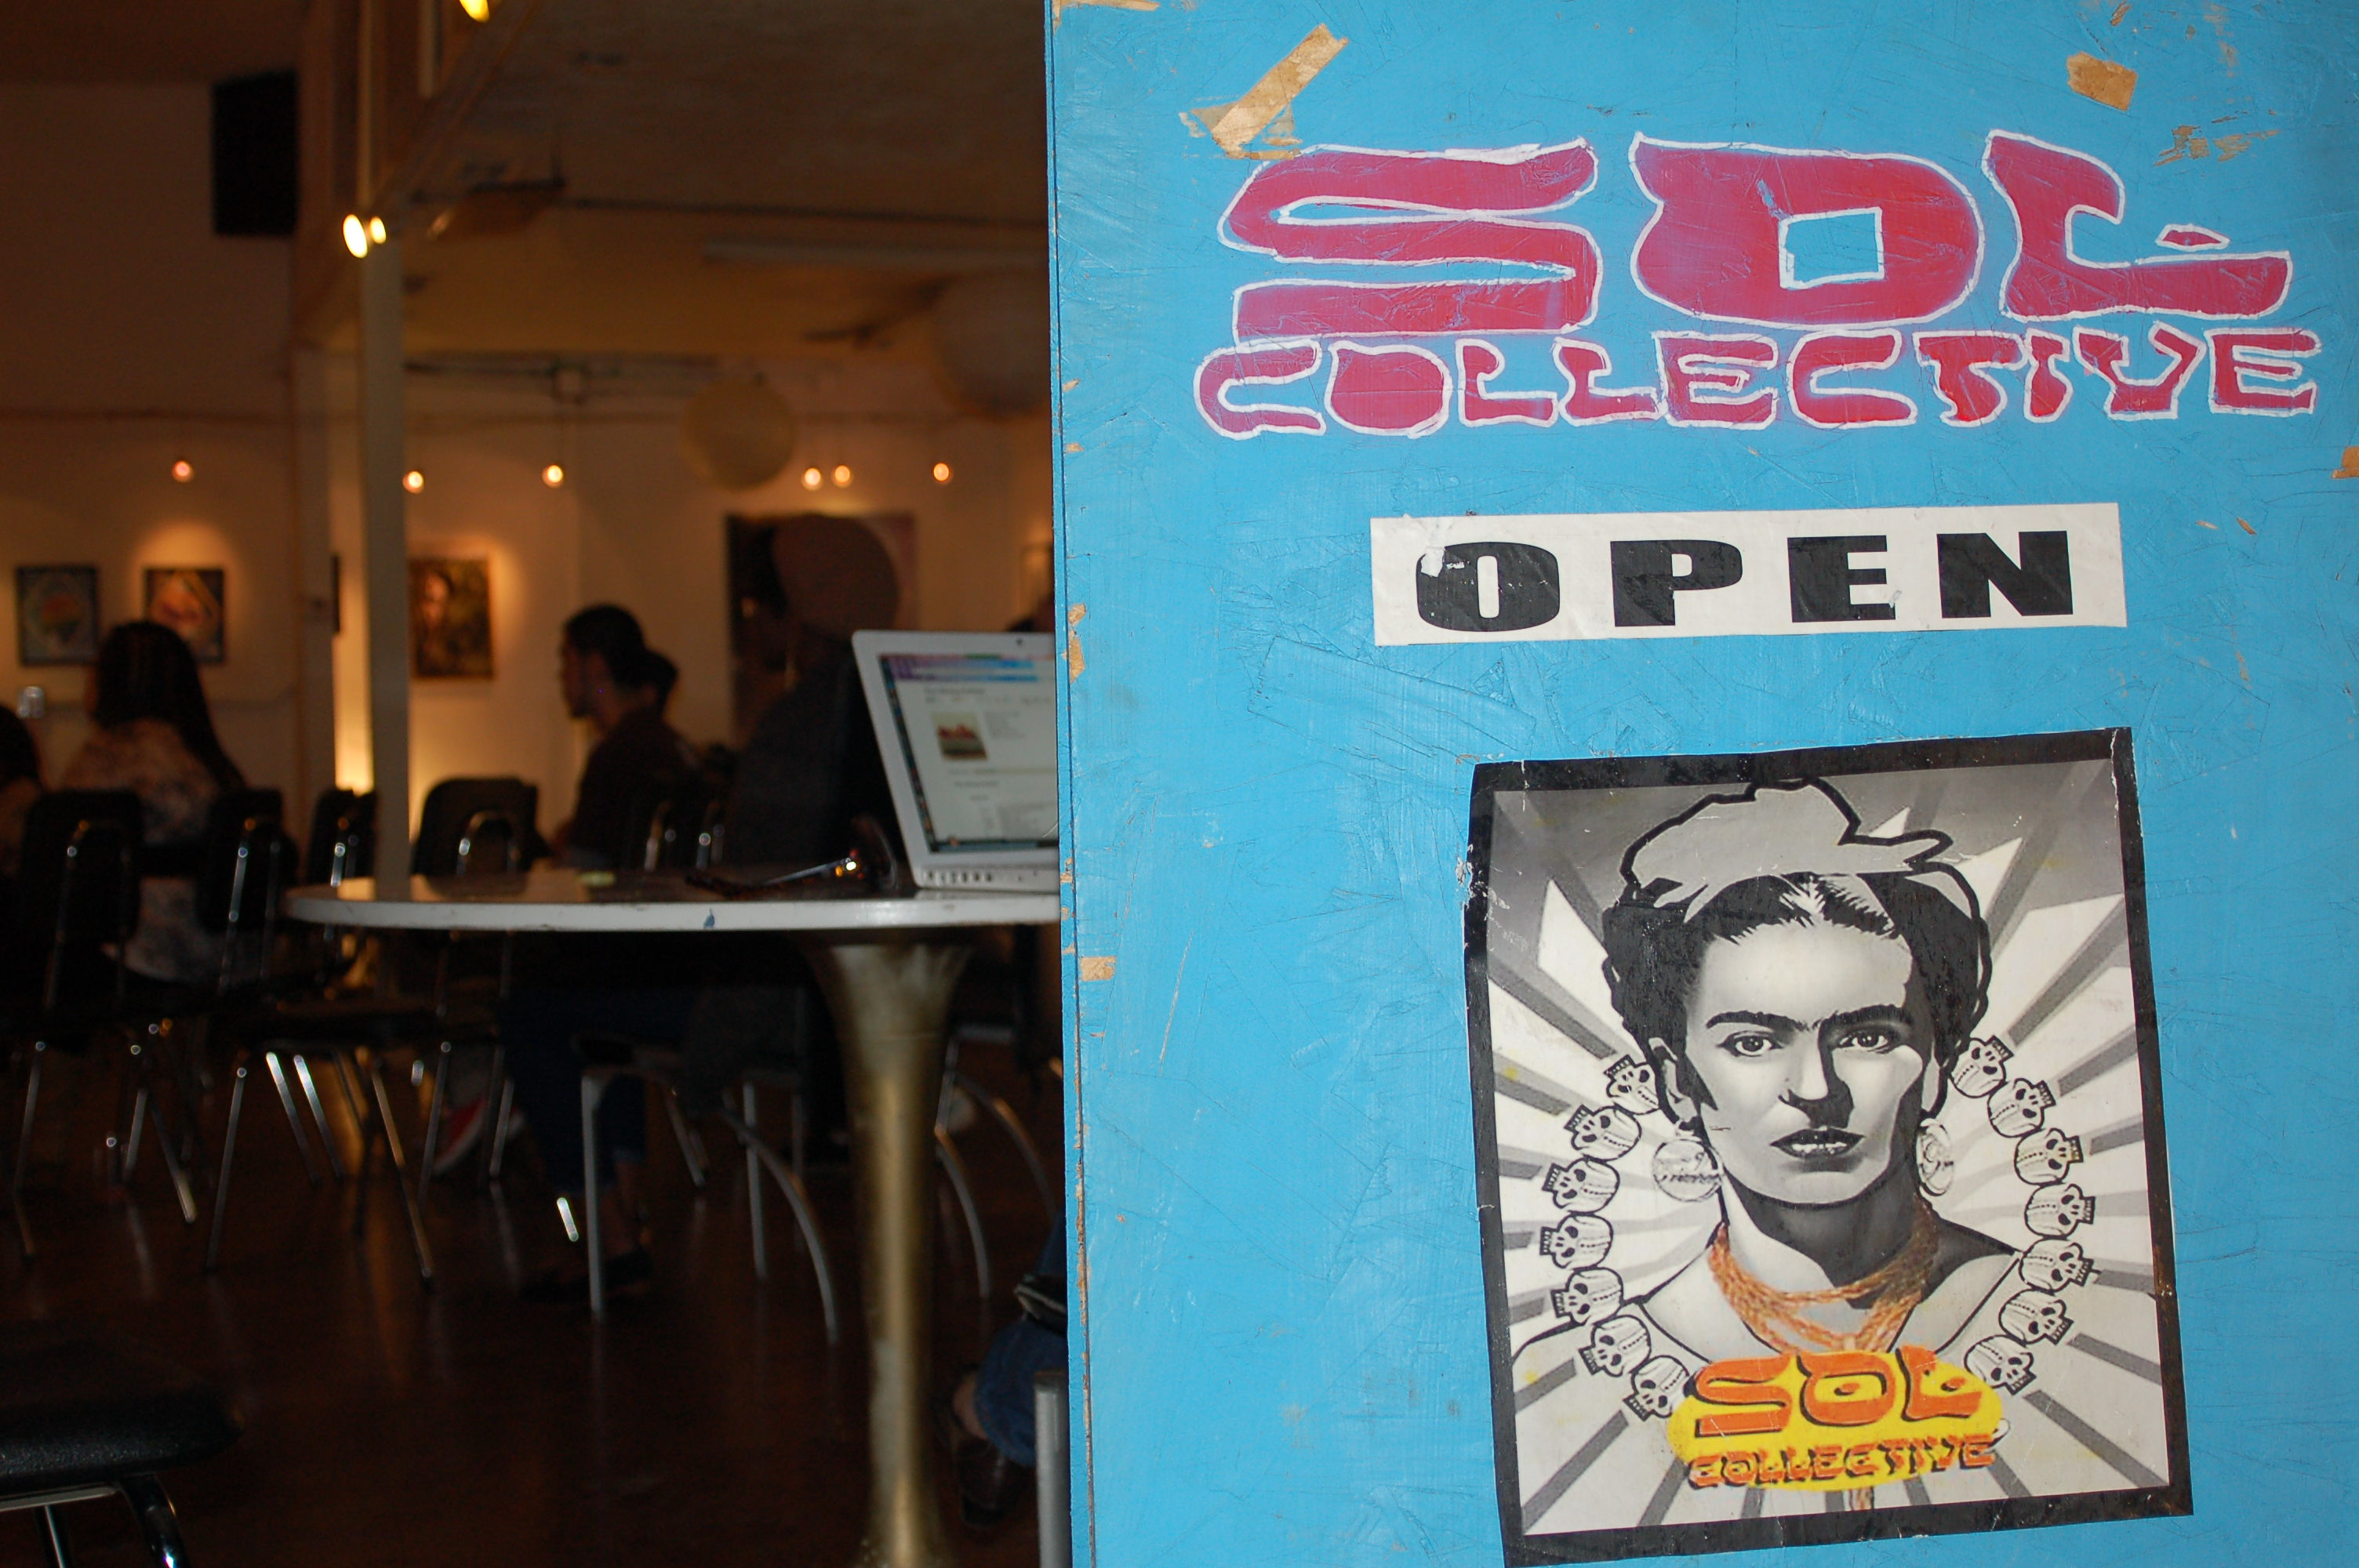 Photo of Sol Collectivce sign displayed inside the door of the building.